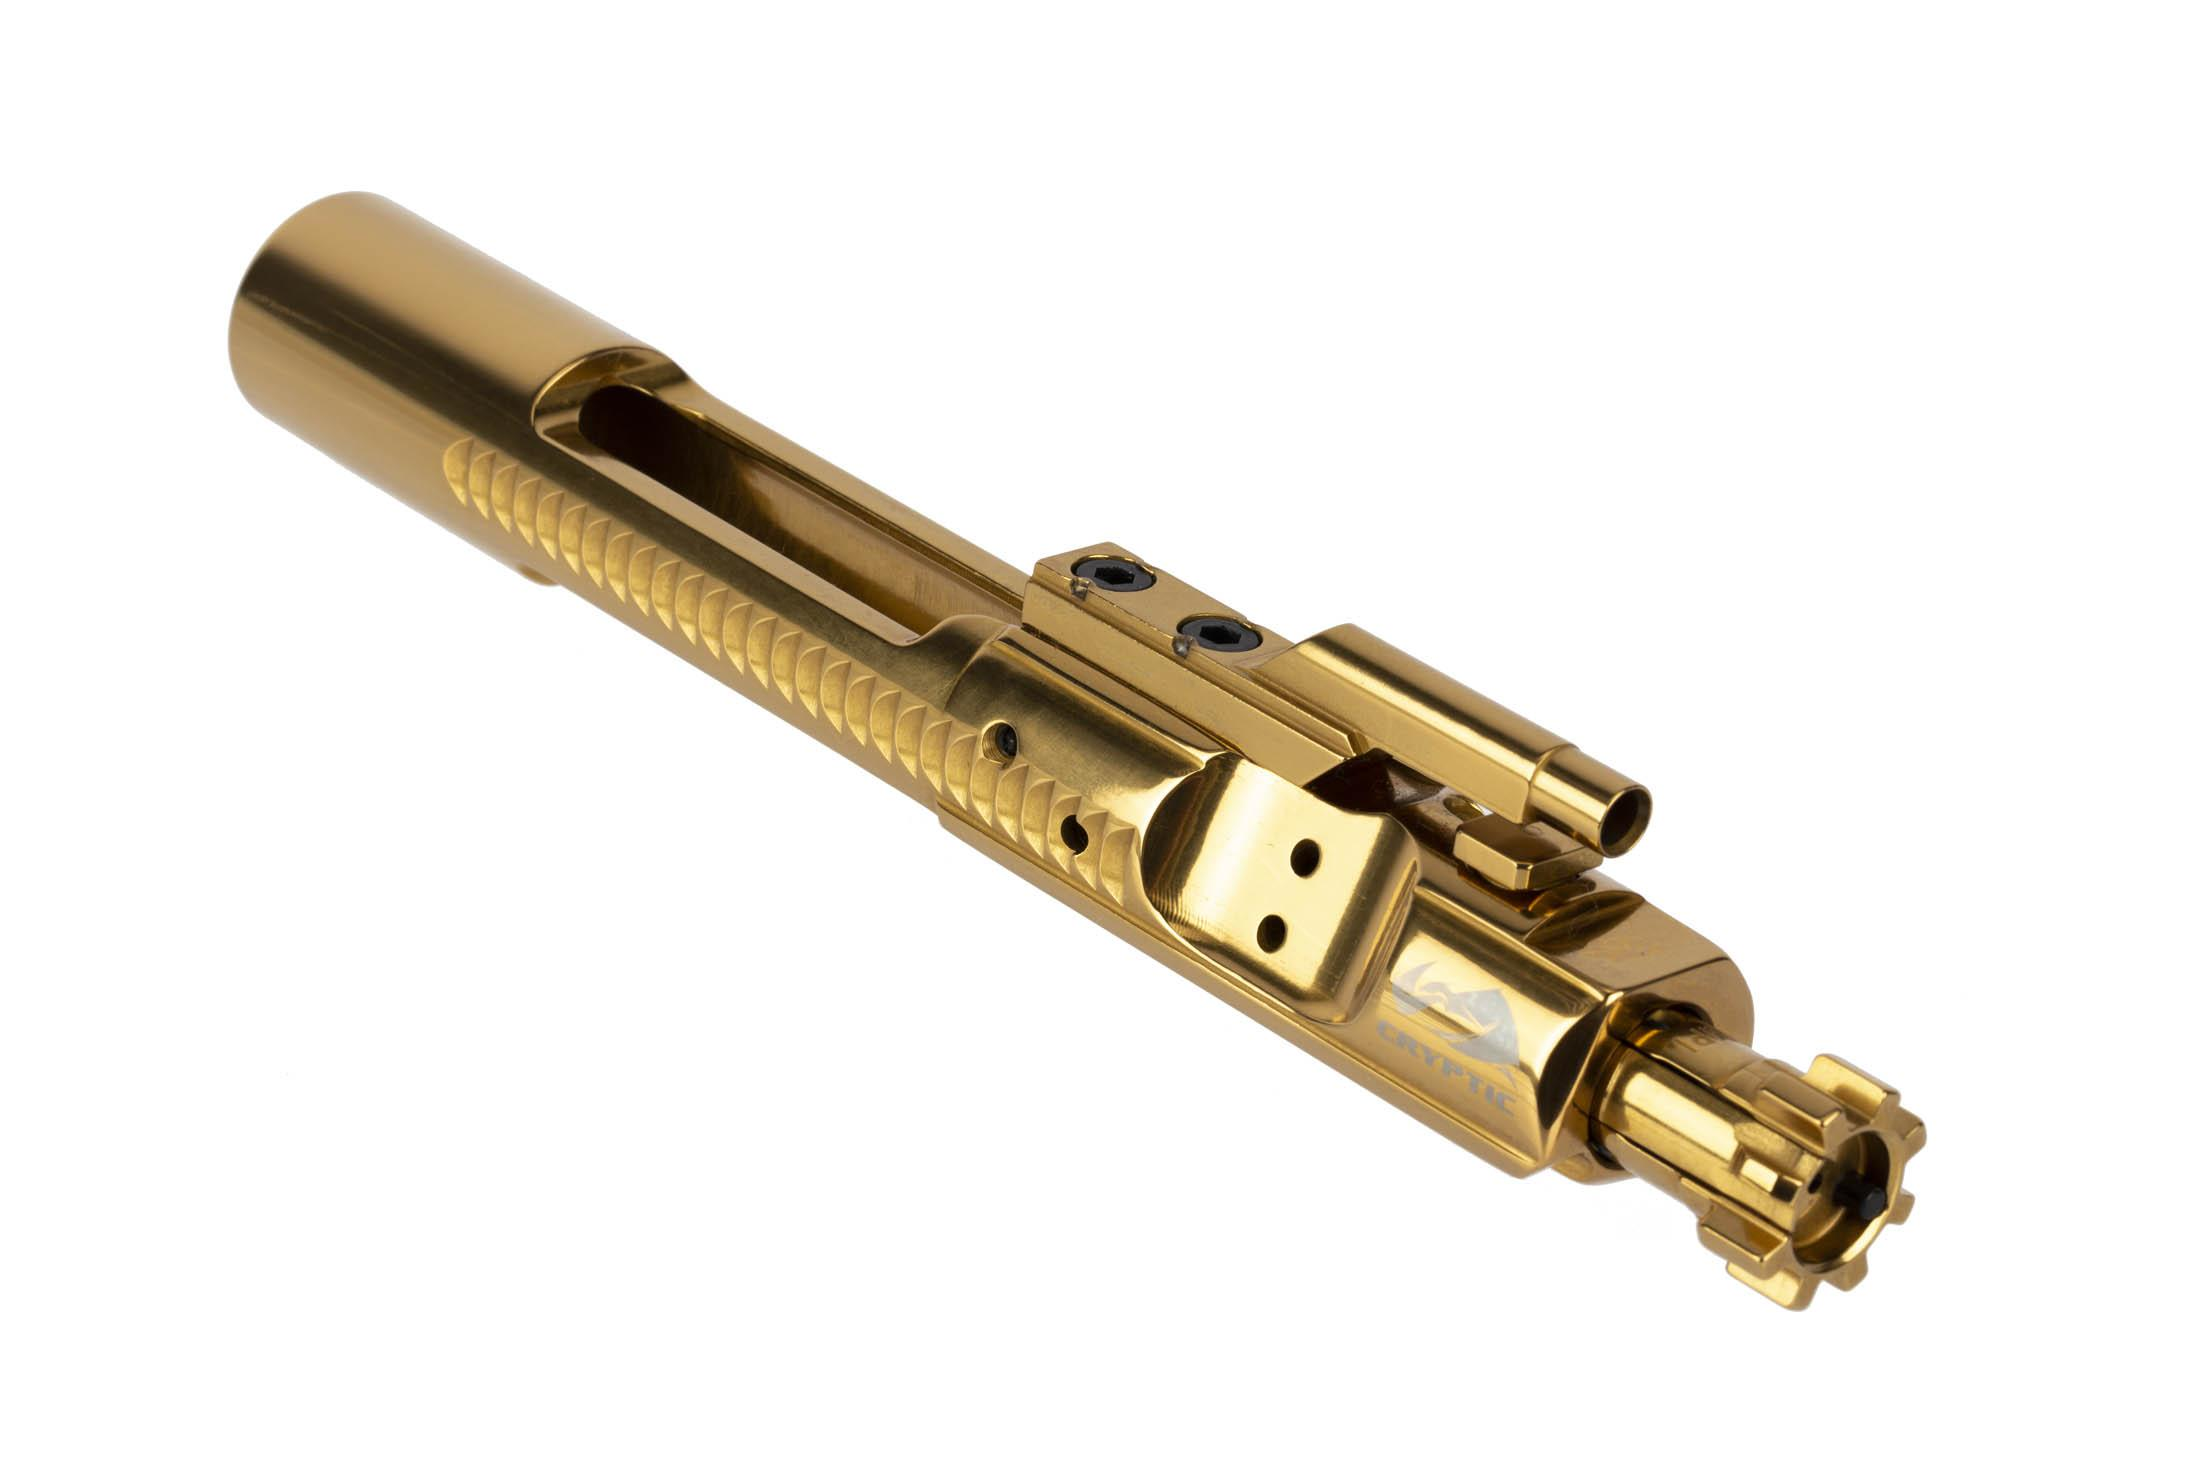 Cryptic Coatings Mystic Gold AR-15 bolt carrier group for 6.8 SPC has an ultra-slick 0.45 coefficient of friction